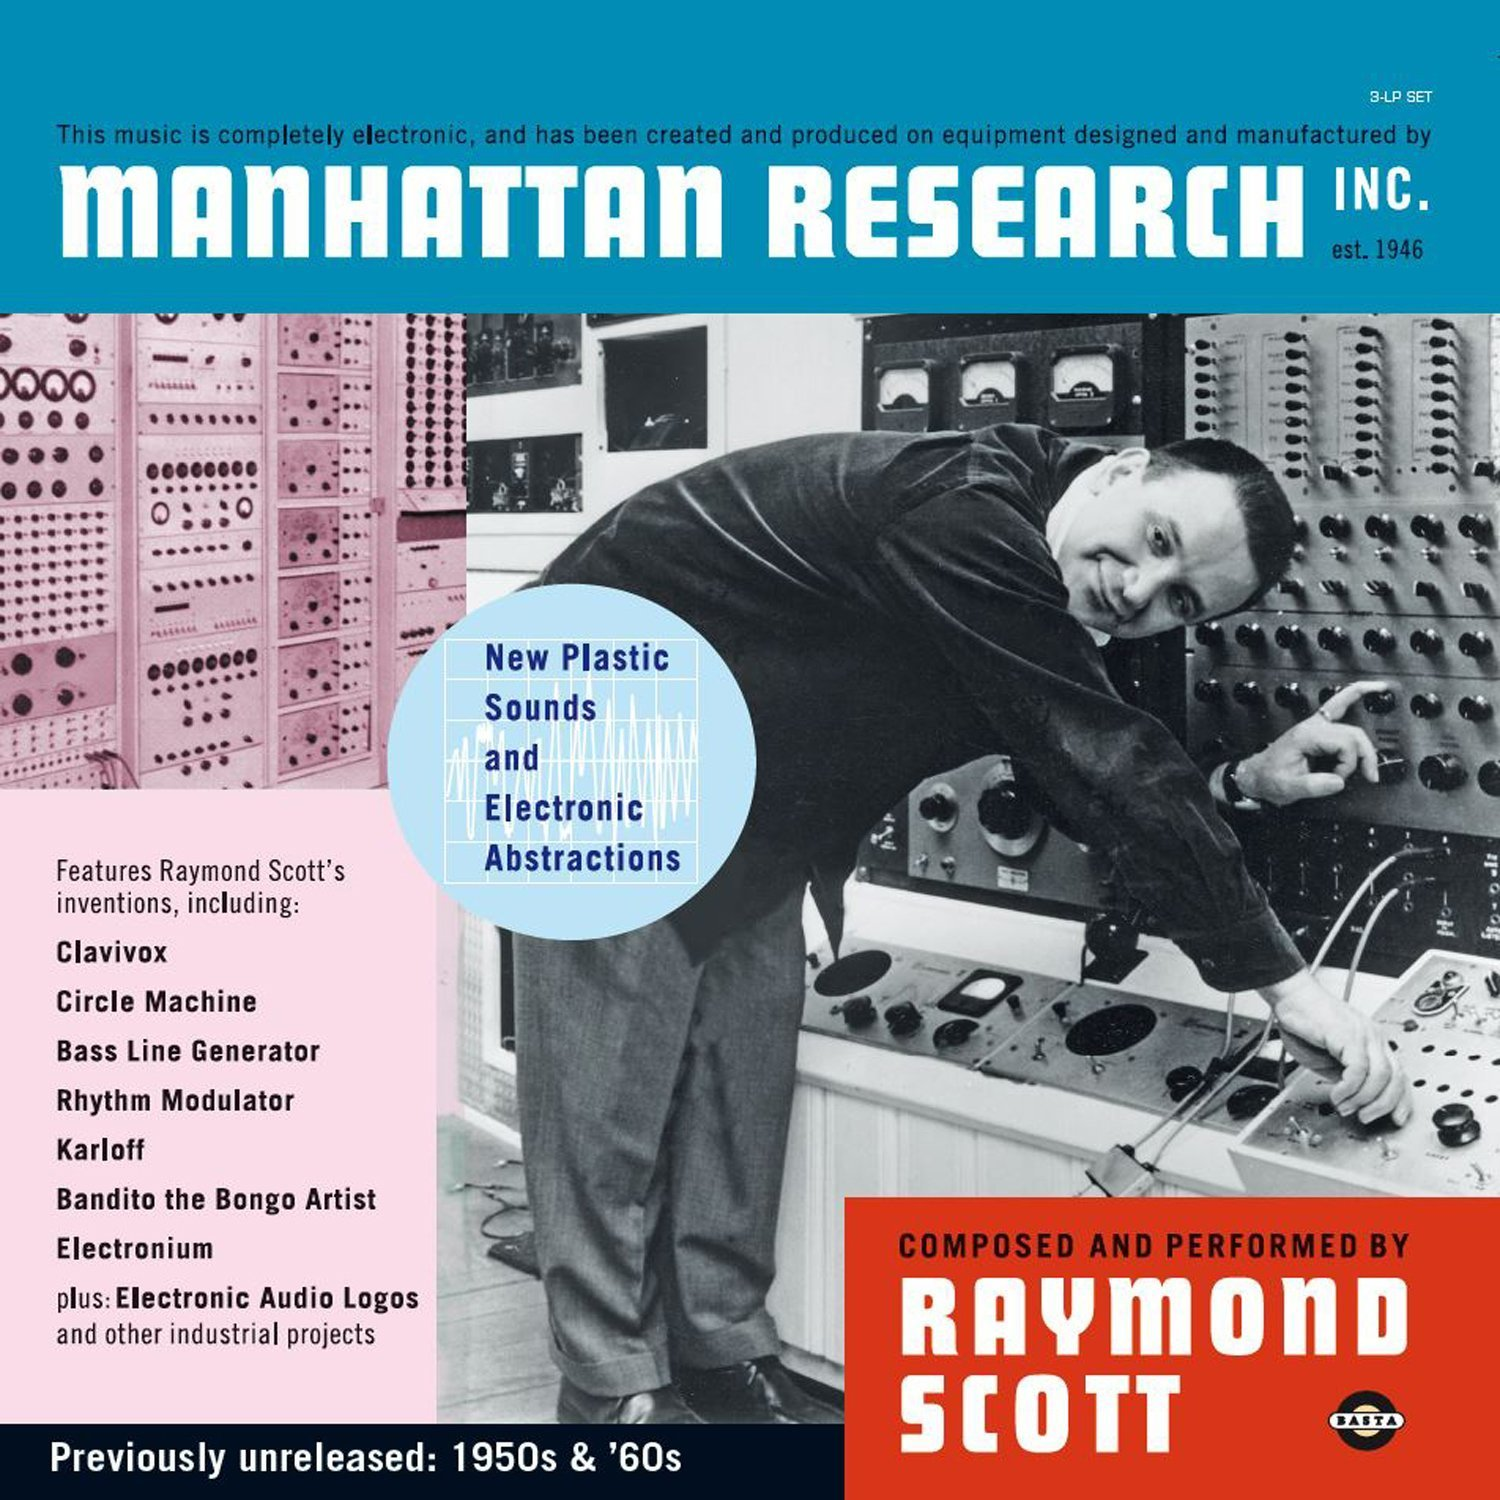 catalog 06 17 raymond scott manh research